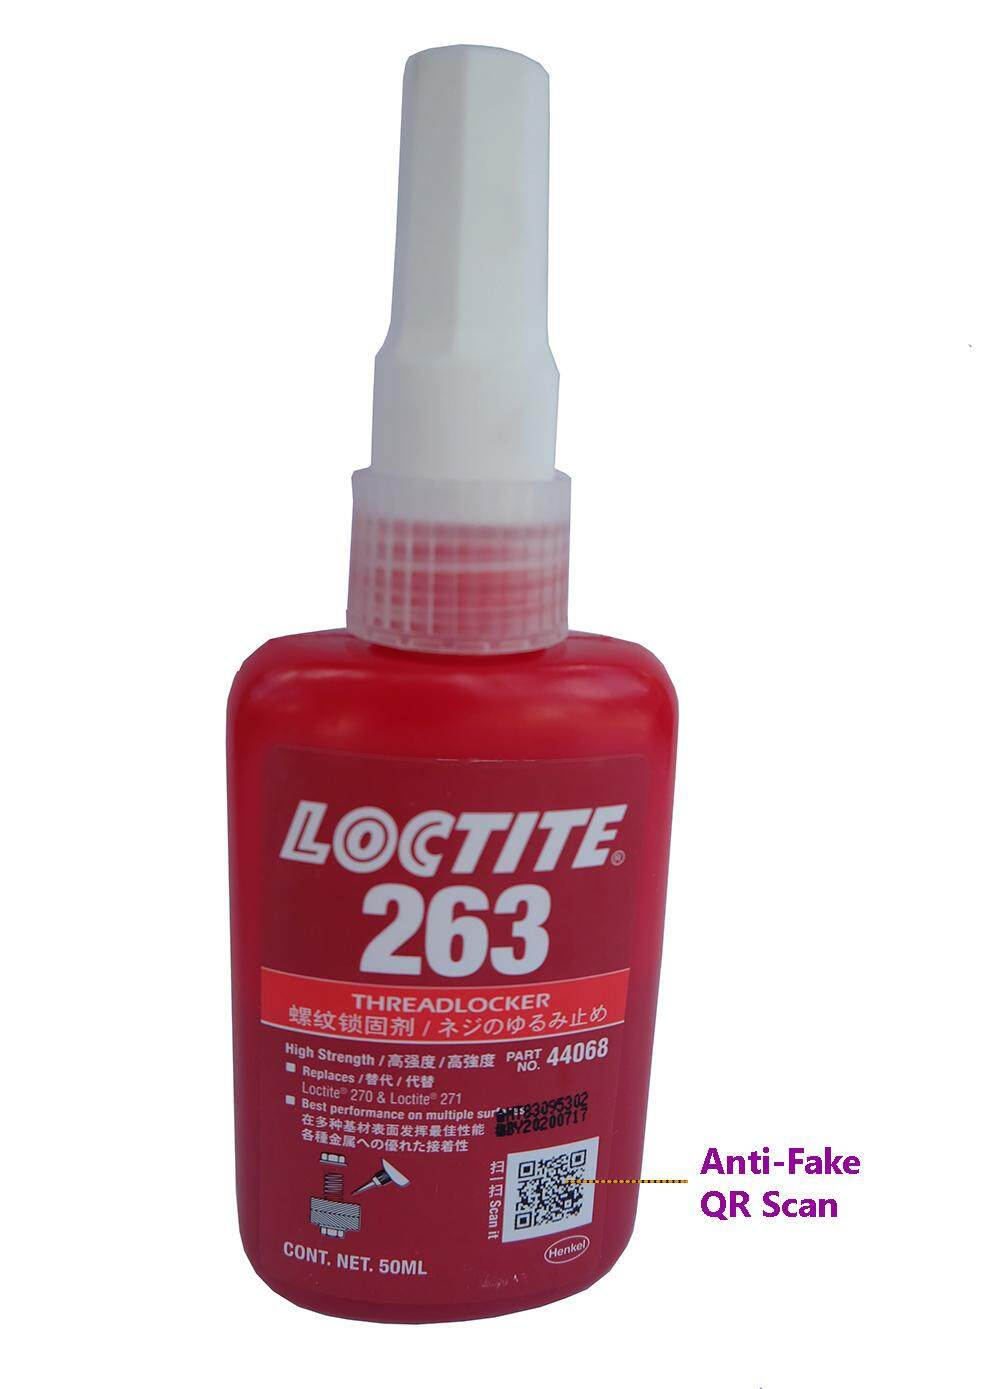 Loctite 263 Screw Lock Adhesive and Anaerobic Thread Sealant Model 263 50ml High Strength